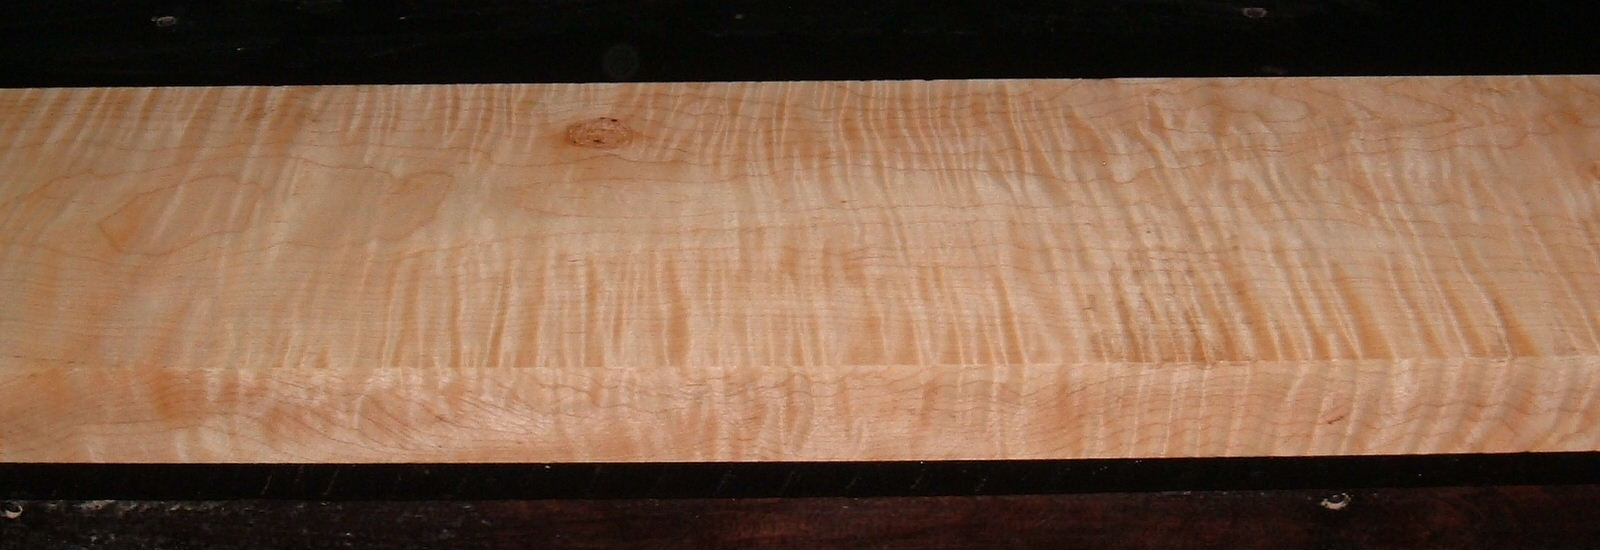 M2003-240, +1-7/8x7-1/4x62, Figure Curly Tiger Maple